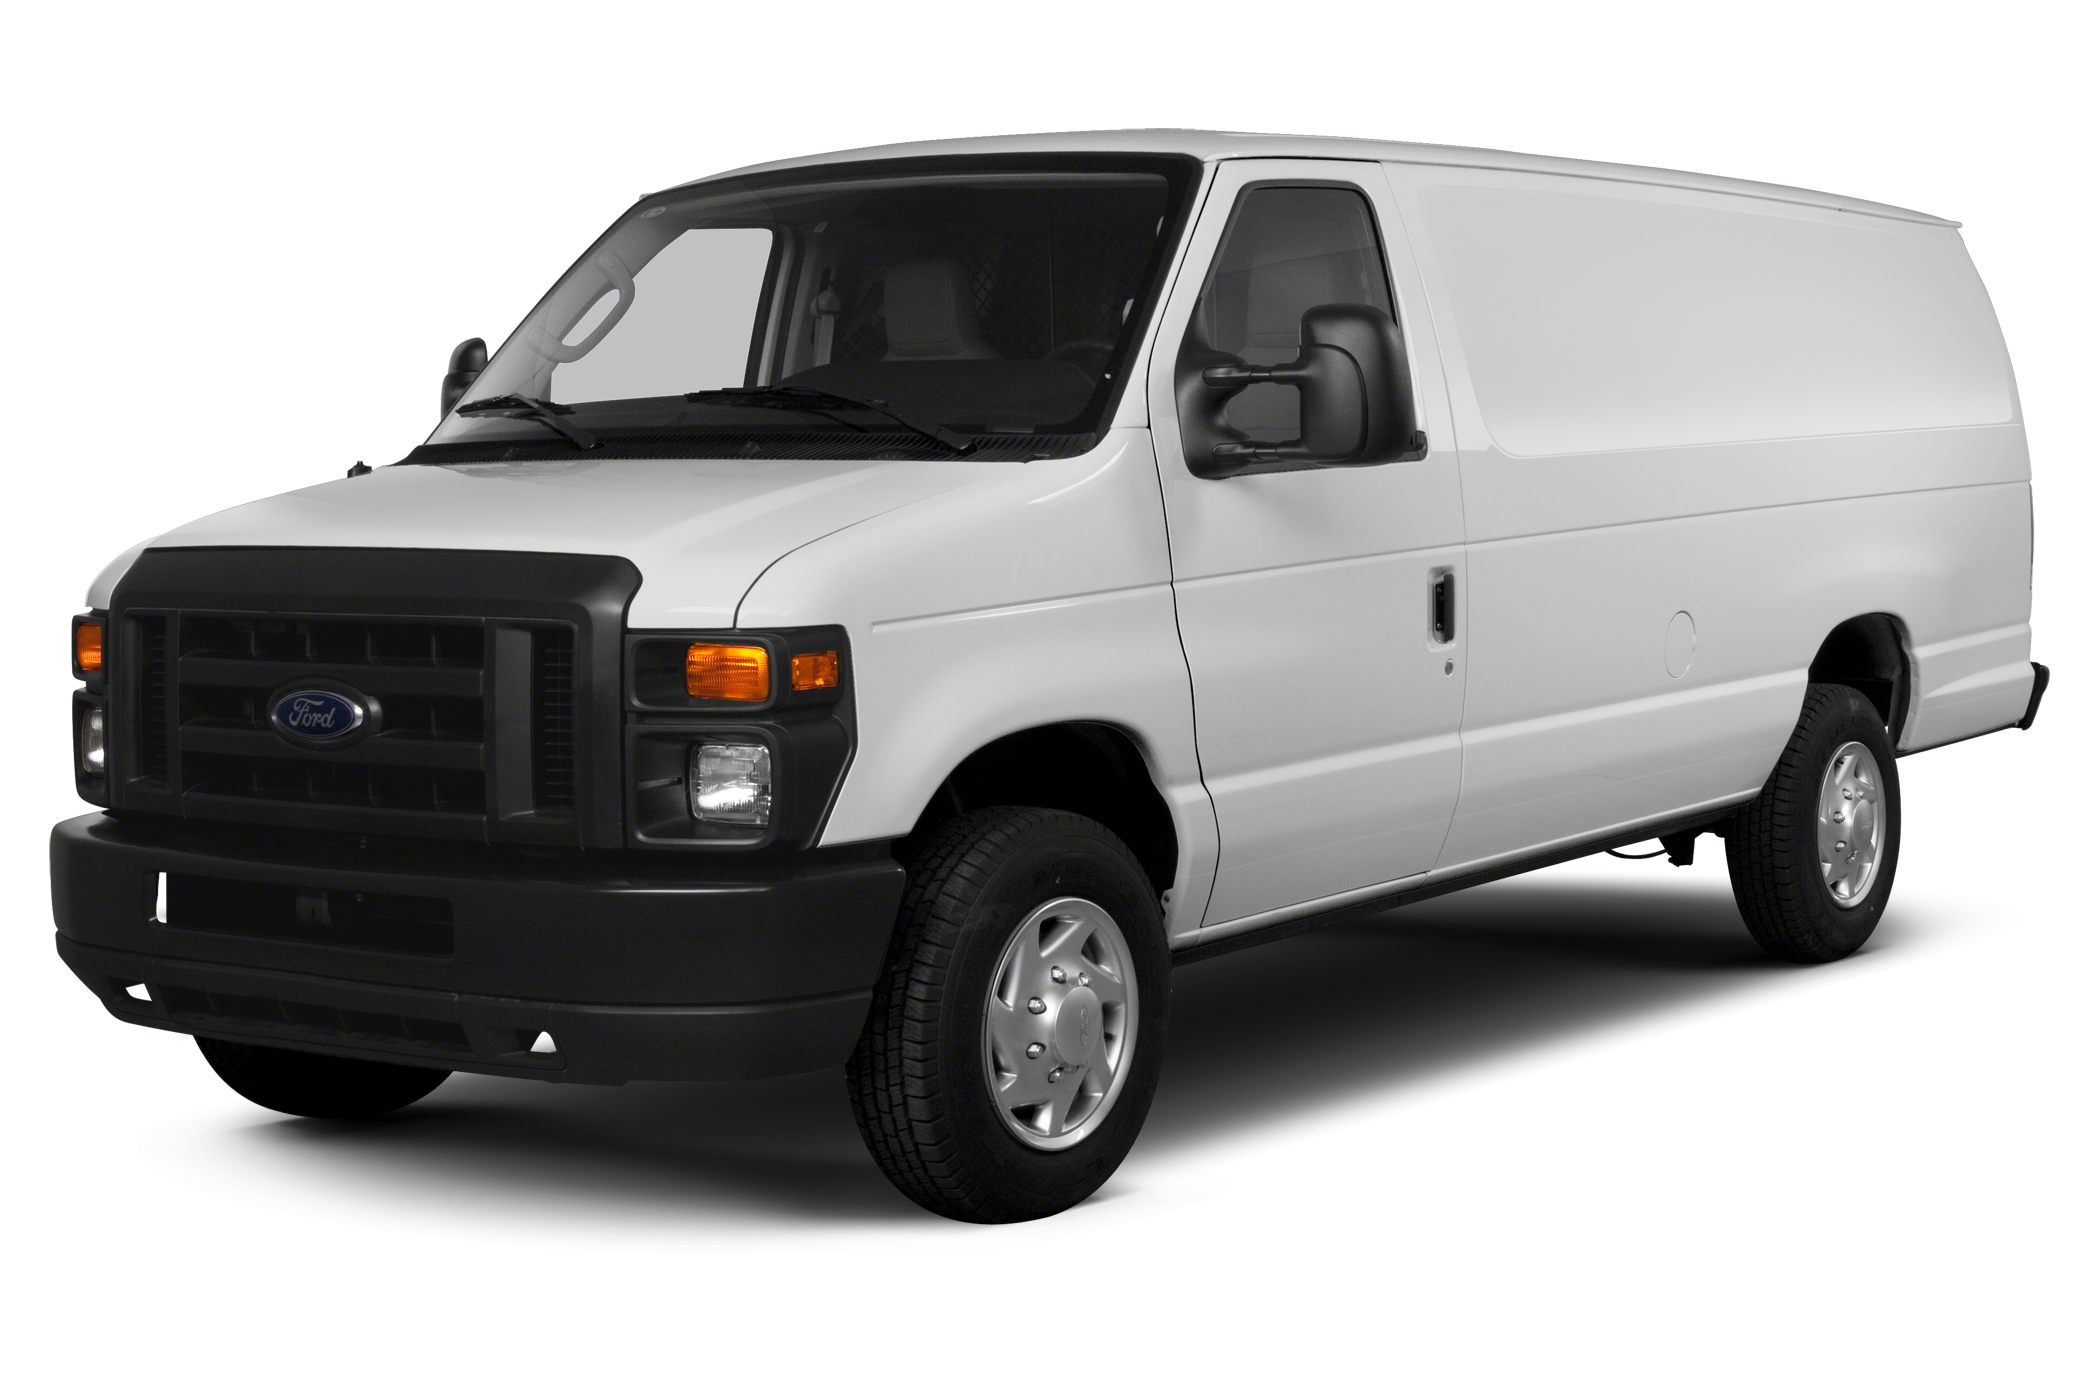 2013 Ford E250 Cargo Cargo Van for sale in Cincinnati for $21,988 with 15,549 miles.